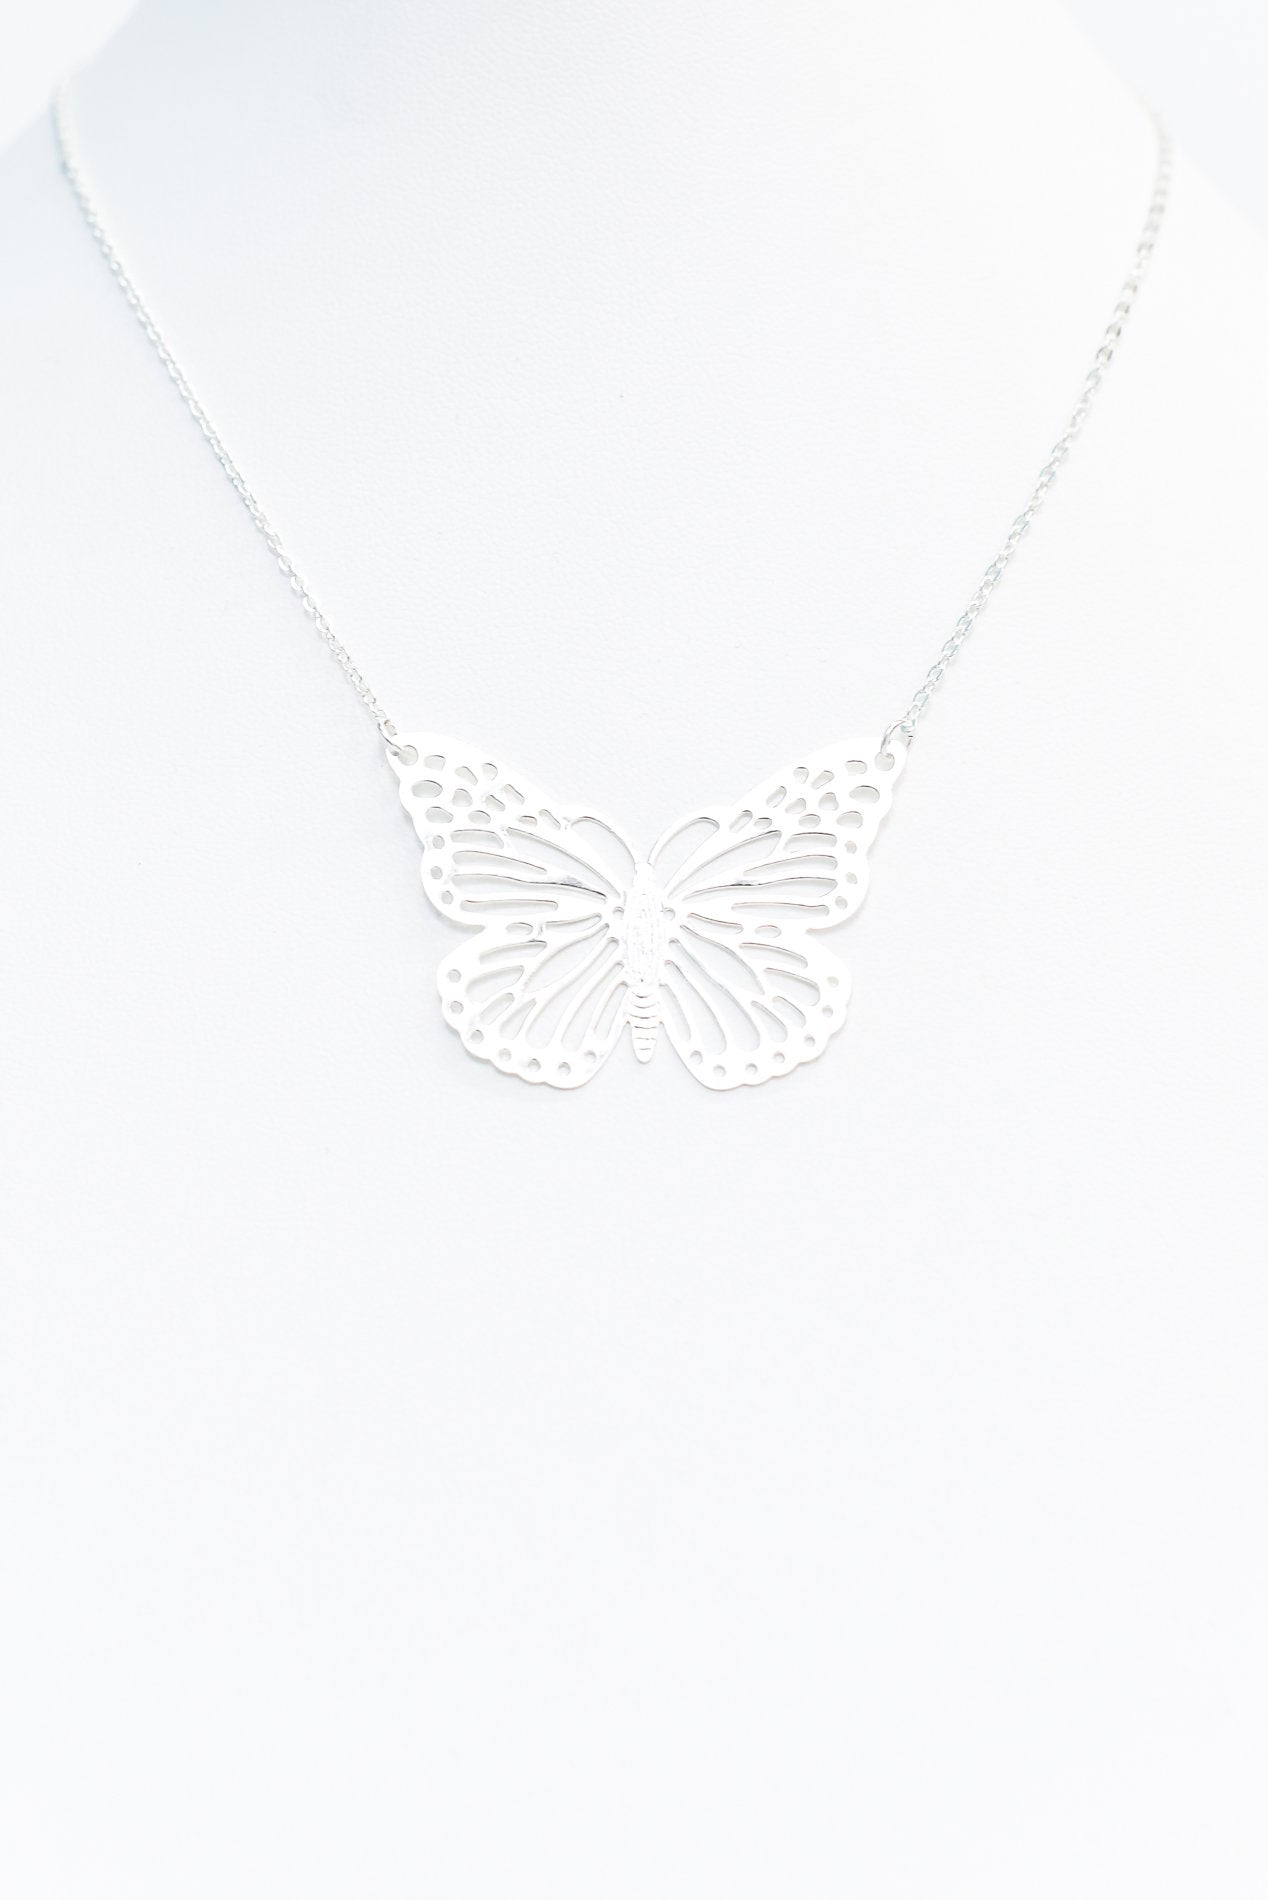 Silver Butterfly Pendant Necklace - NEK3428SI